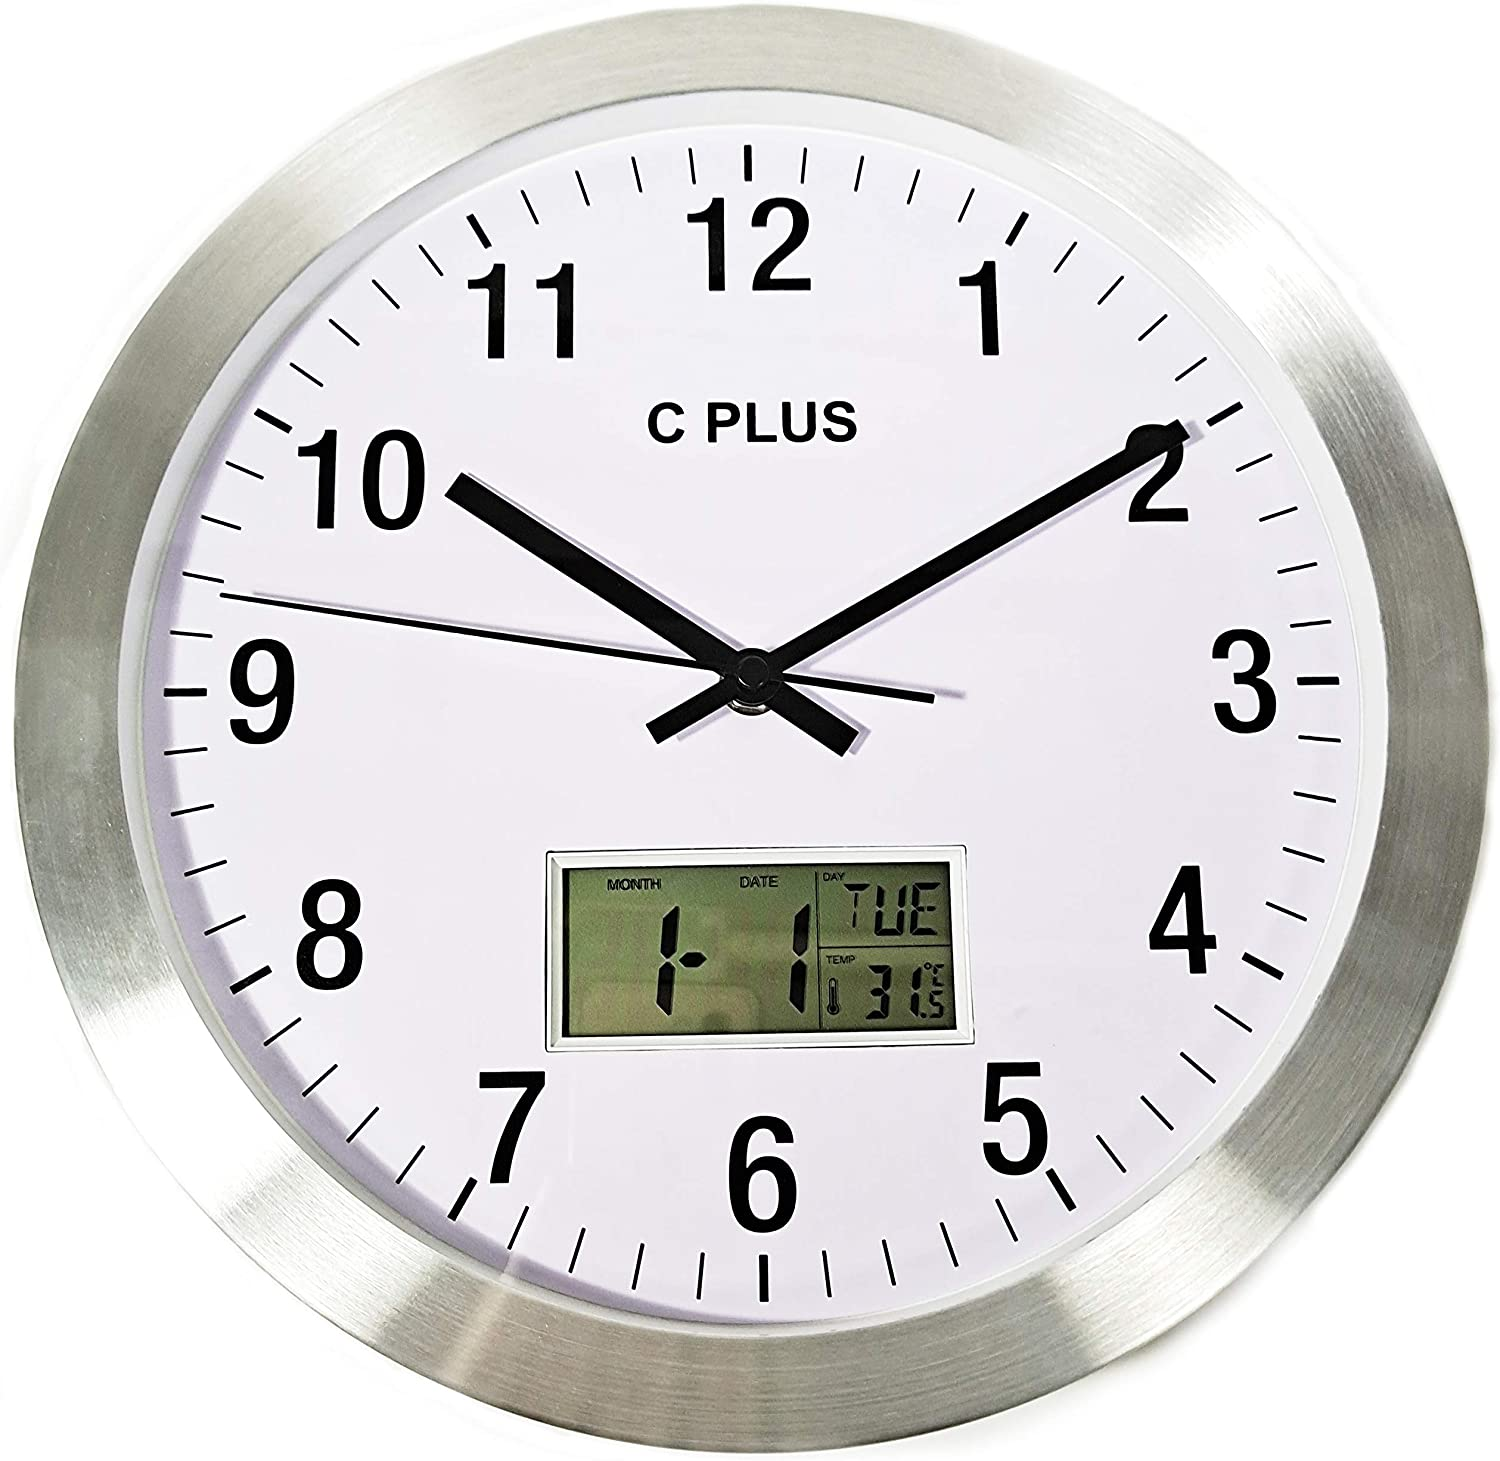 Free Shipping Cheap Bargain Gift C Plus Wall Clock Limited Special Price Non Ticking Qu Operated Silent Battery 12 Inch